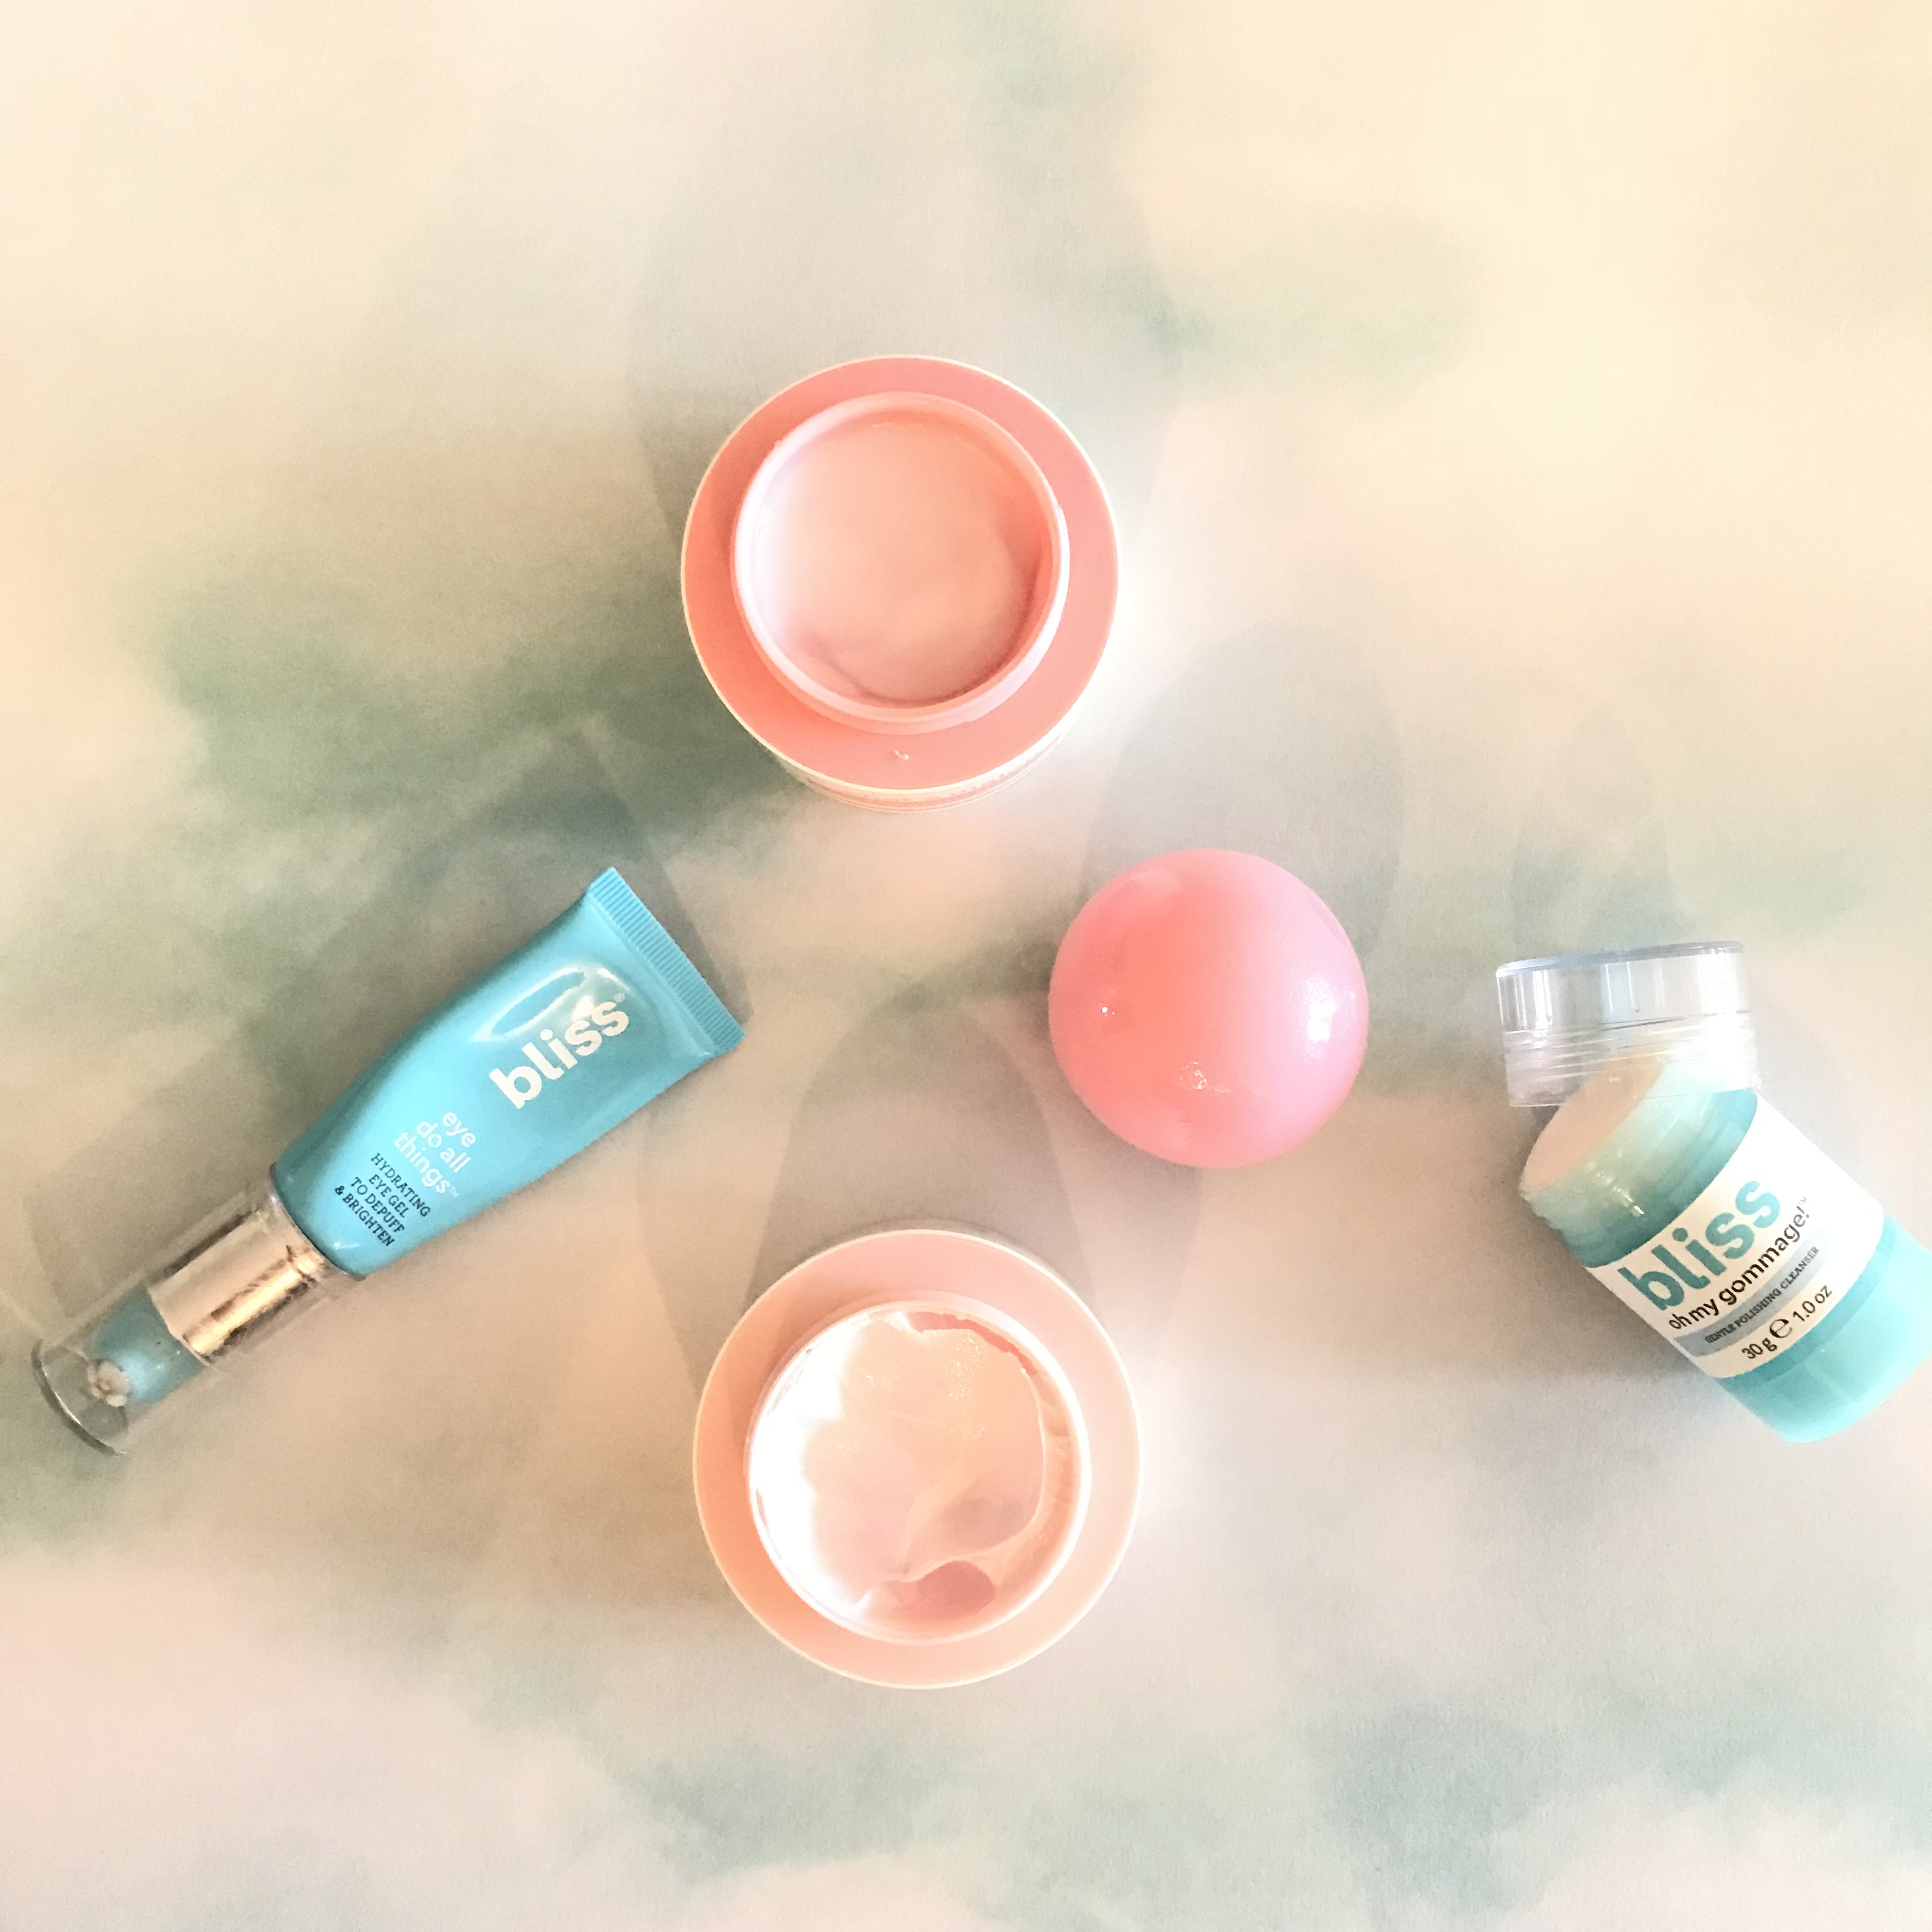 bliss, bliss skincare, bliss product review, bliss skincare review, bliss from target, cruelty free products from target, men's skincare, cruelty free skincare, anti aging skincare, christopher cupcakes,